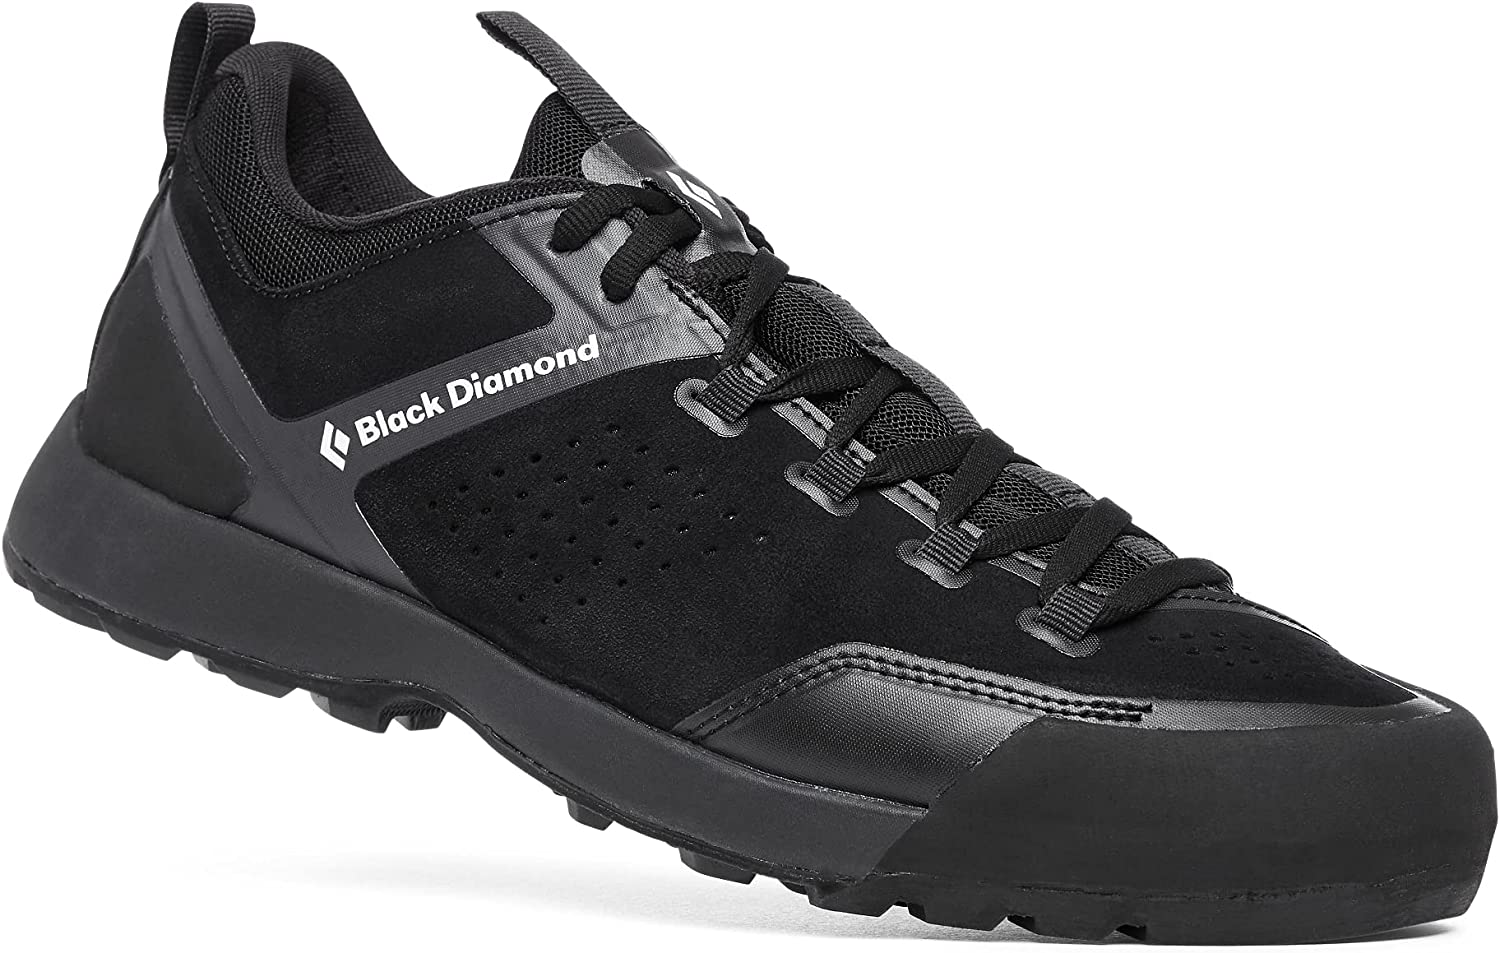 Black Diamond Equipment - Men's Mission High order Leather Max 63% OFF Shoe XP Approach